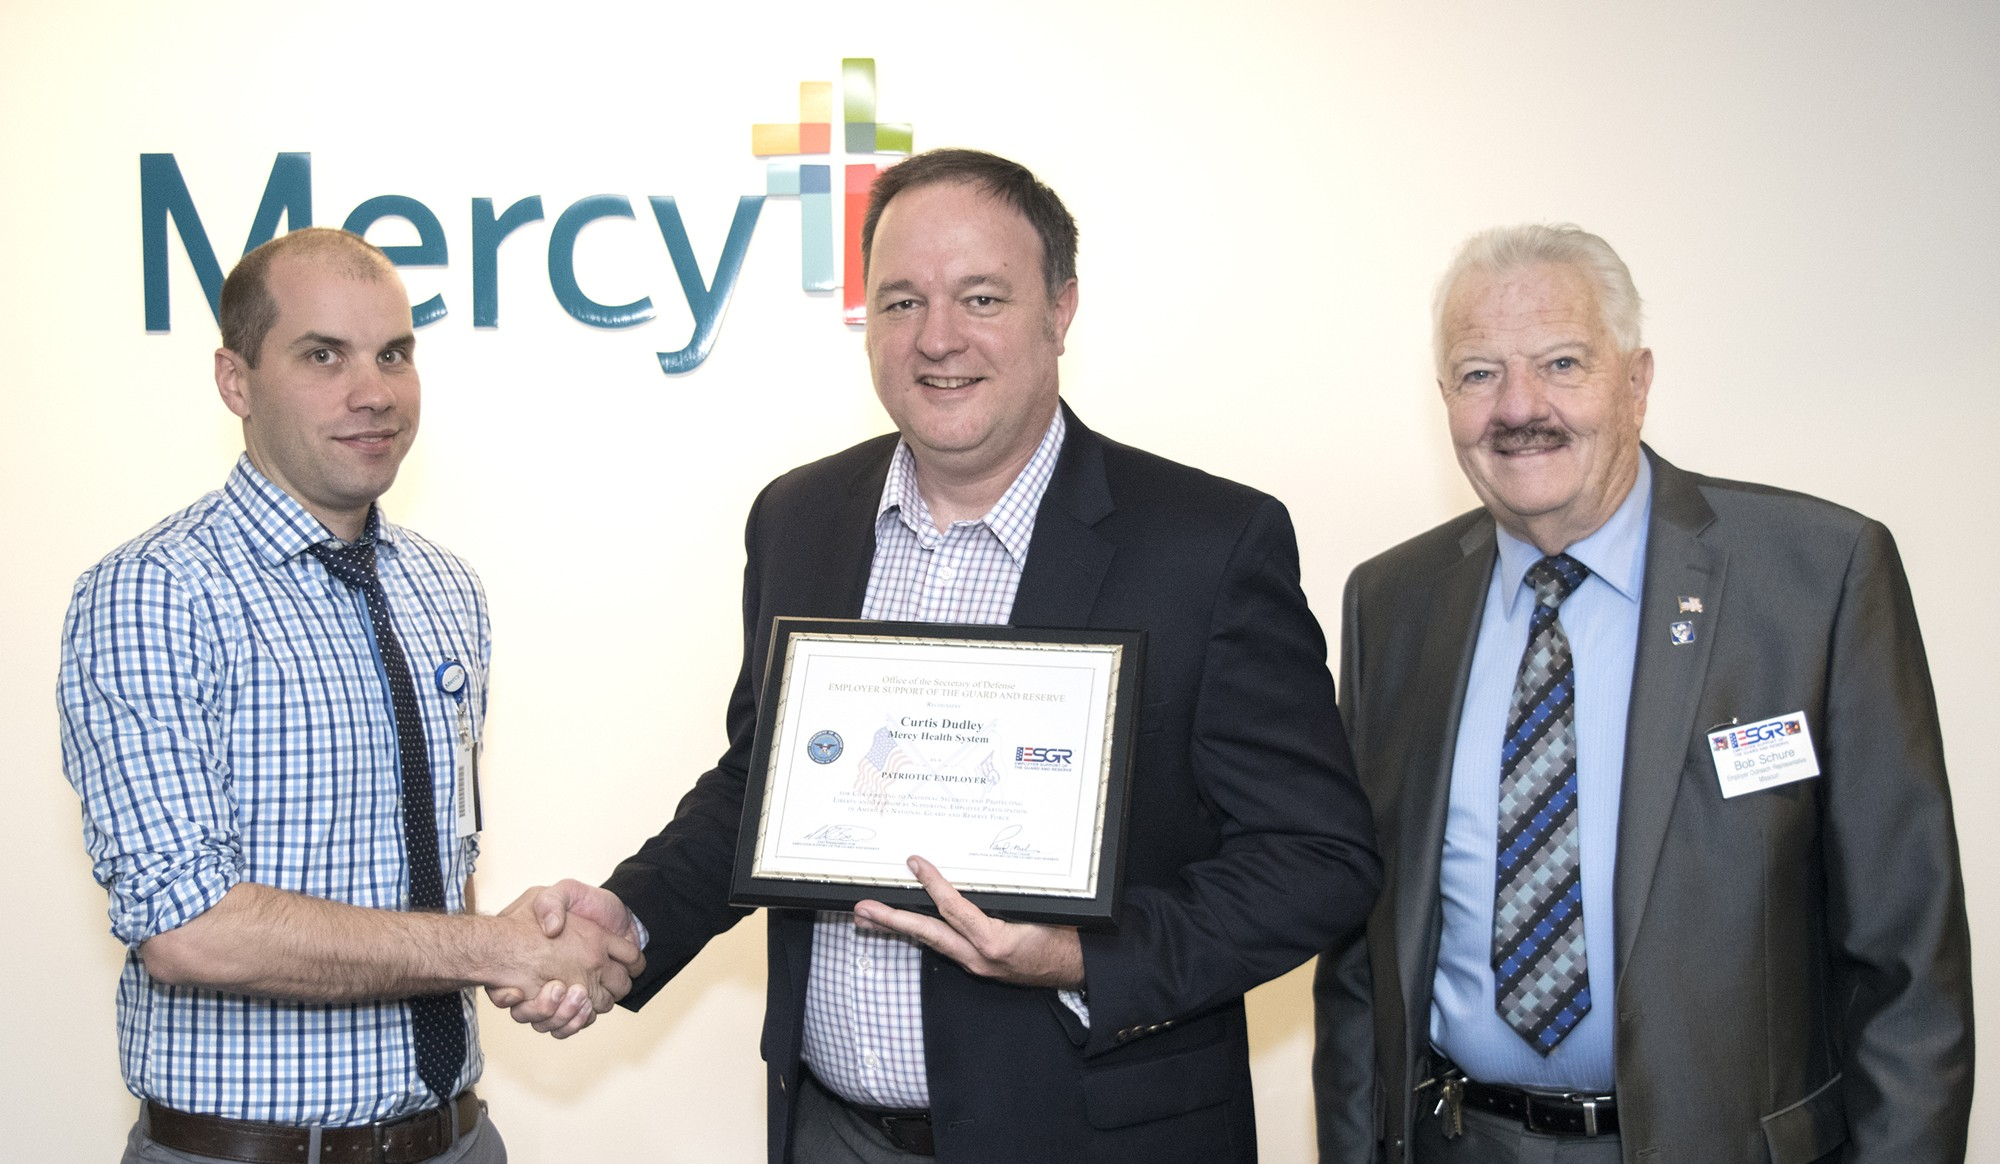 Jonathan Dukes presents the Patriot Award to Curtis Dudley, with ESGR Awards Coordinator Bob Schure.